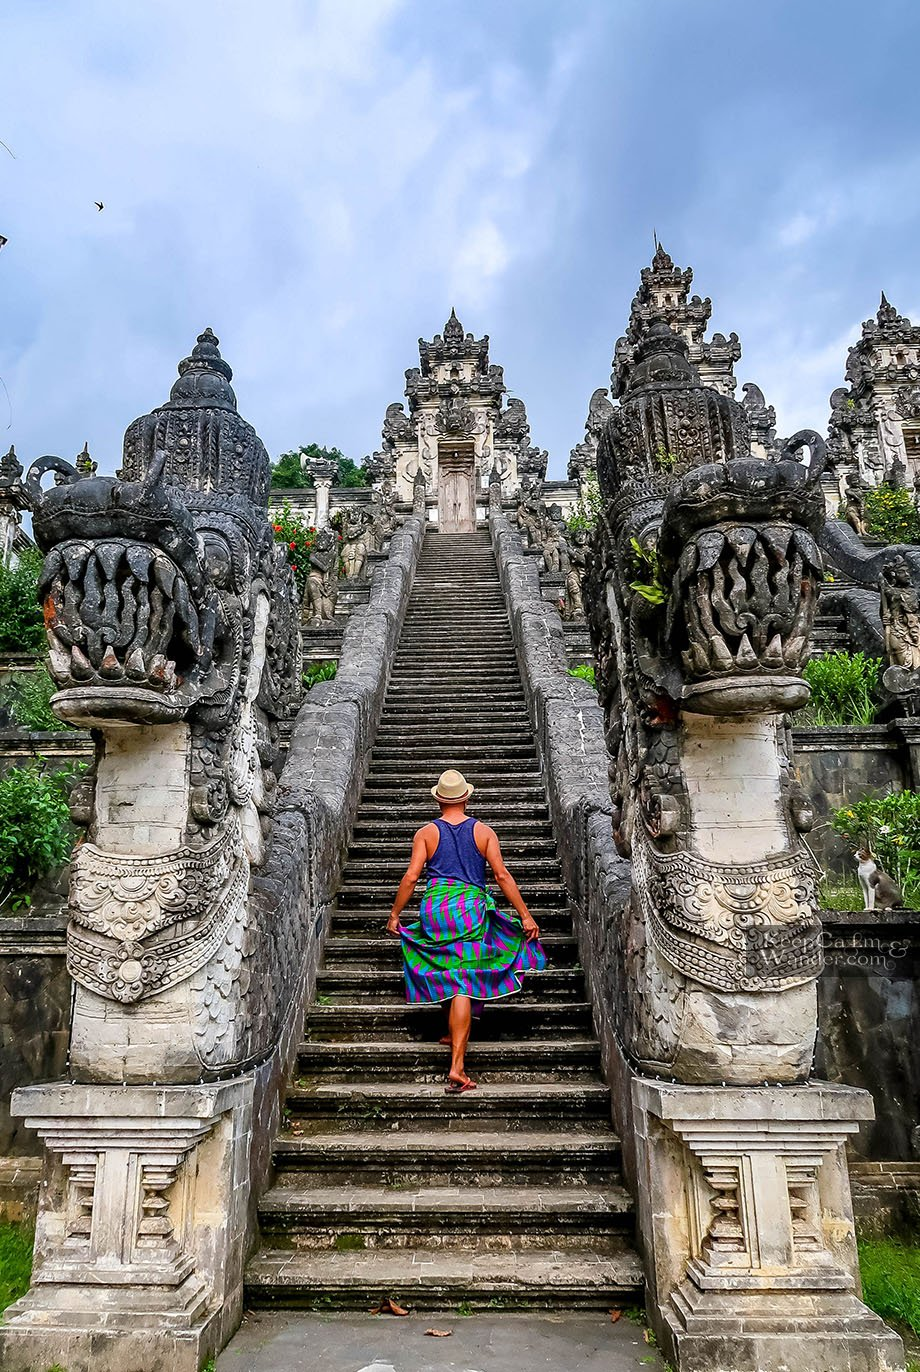 Things to do in Karangasem Bali